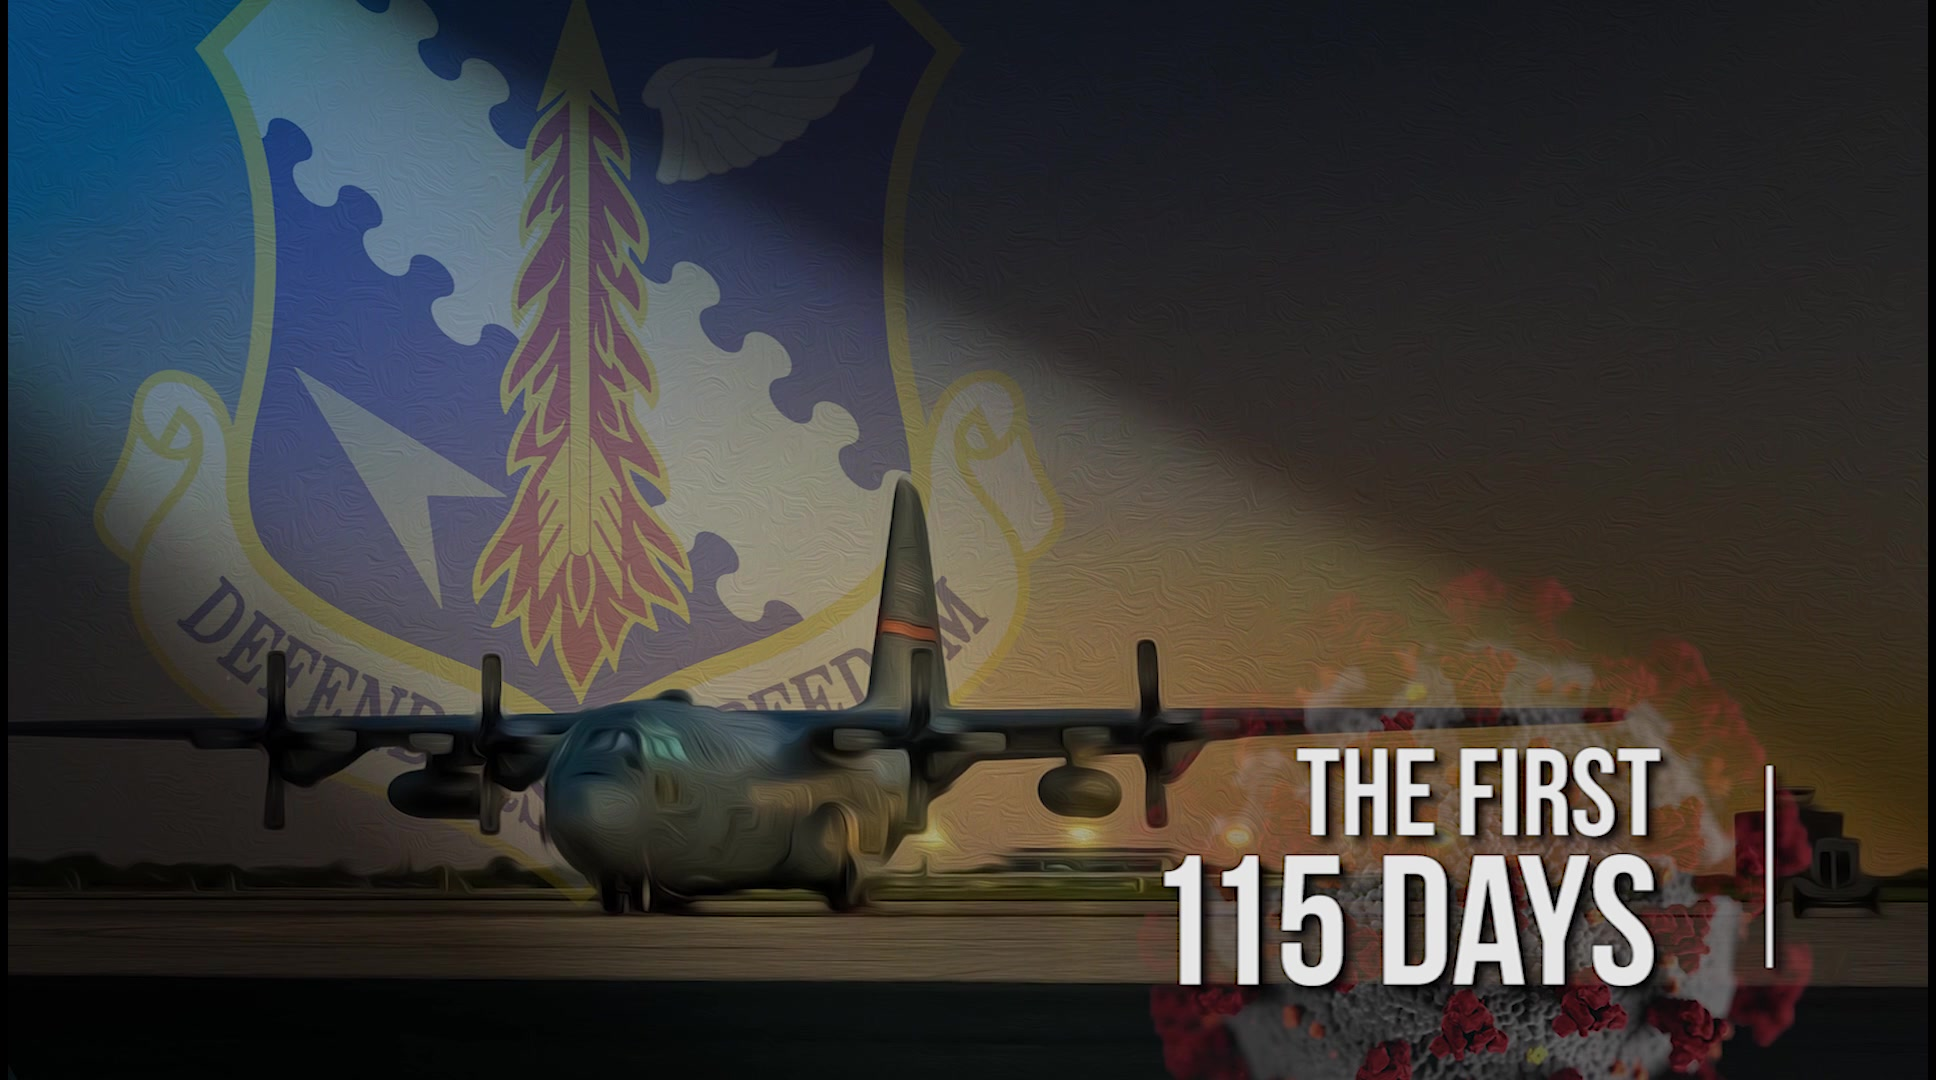 U.S. Military •182nd Airlift Wing • The First 115 Days • Story of four Herculean Months